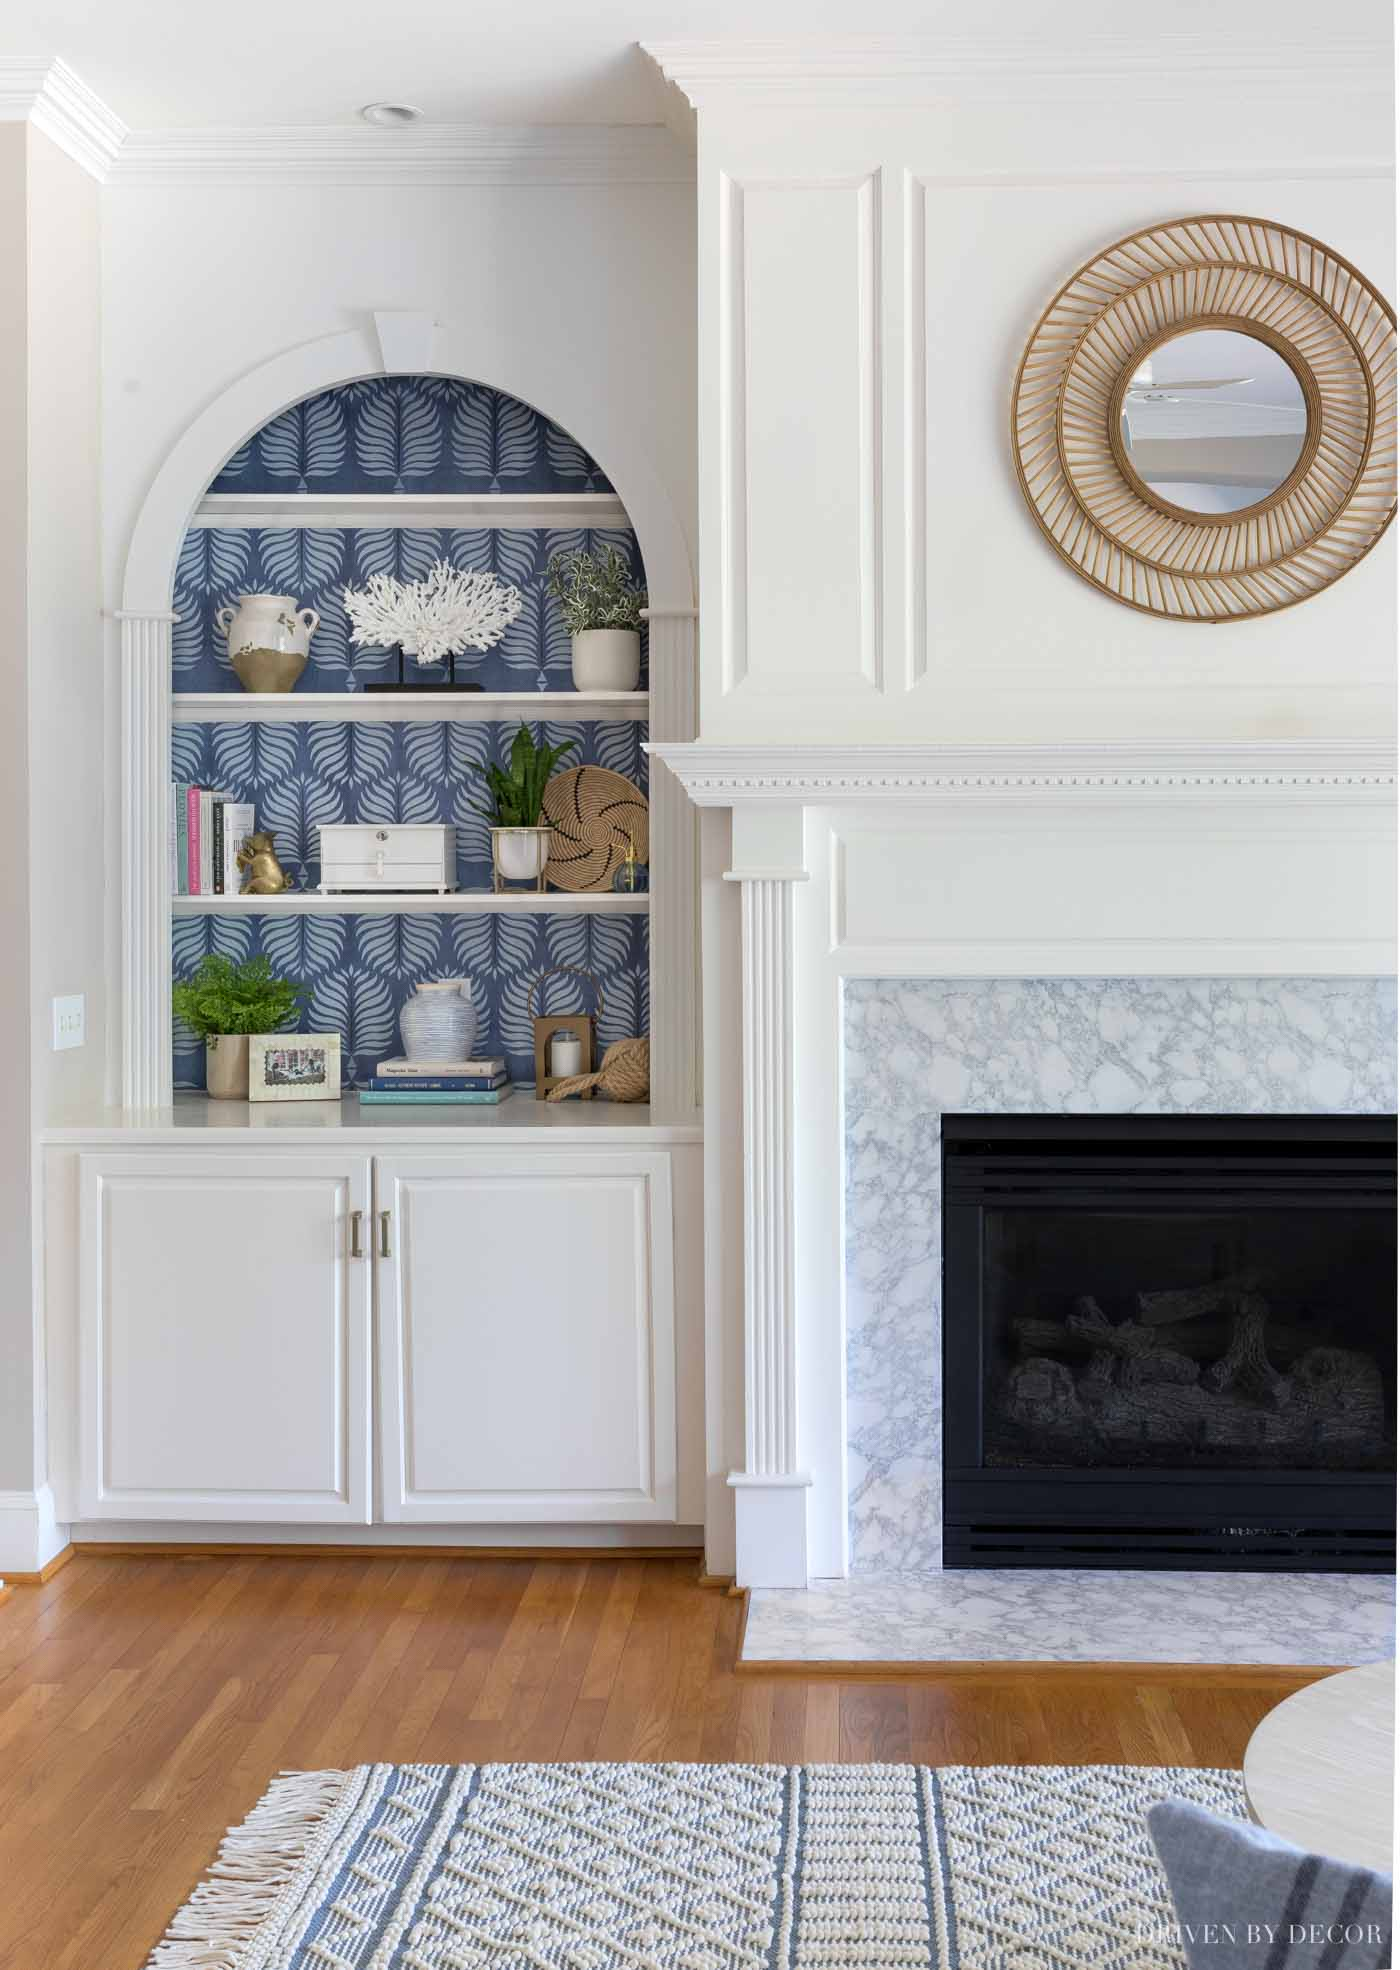 Love the look of a simple rattan mirror above the fireplace!